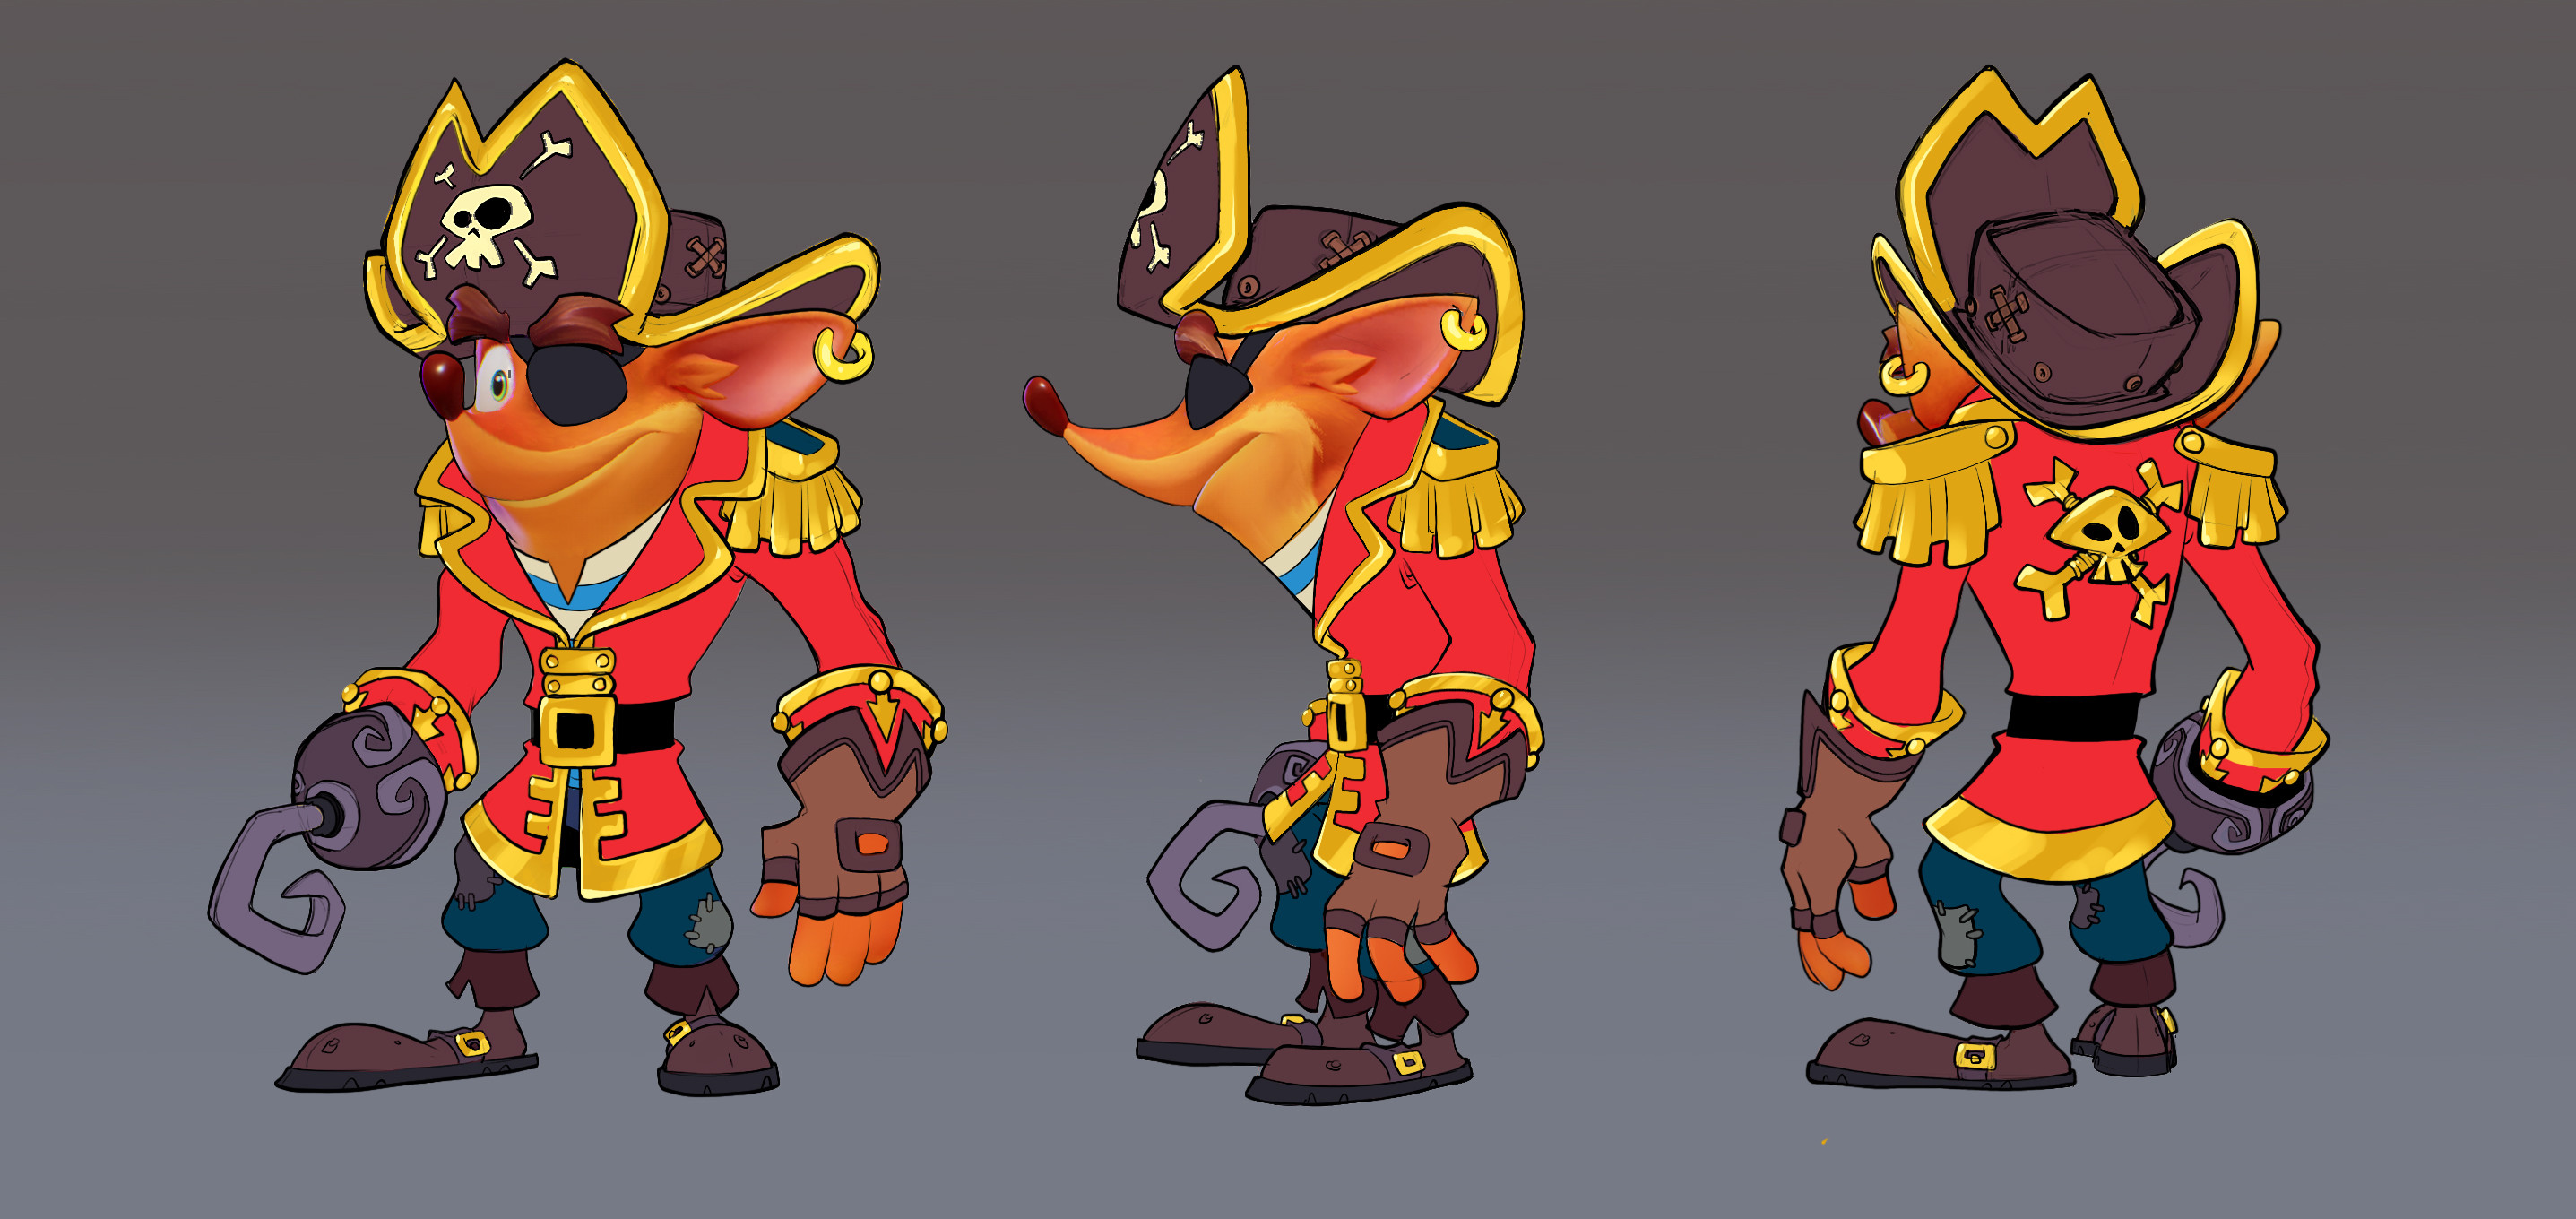 Final Crash Pirate Skin Concept: Minimal rendering requested due to time constraints. Also, more simplified costume details form last ideation, sort of a mix between 3rd and 4th round designs.